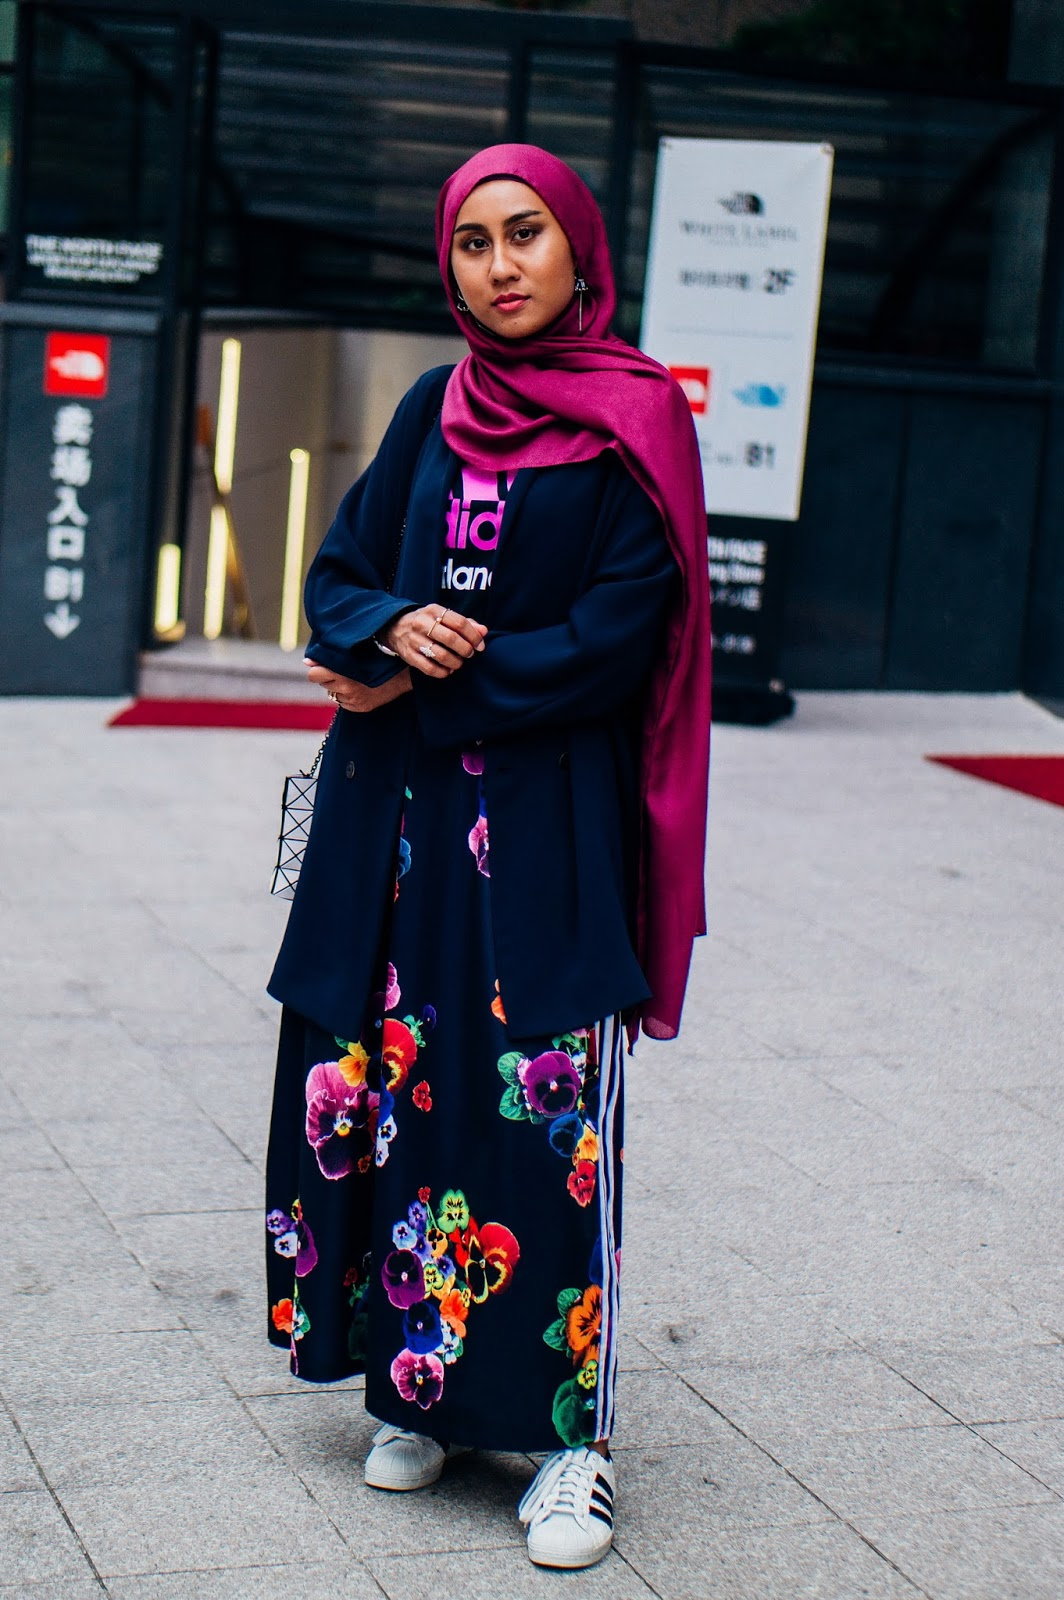 How Hijabis Can Wear Skirts Without Looking Too 'Girlie'